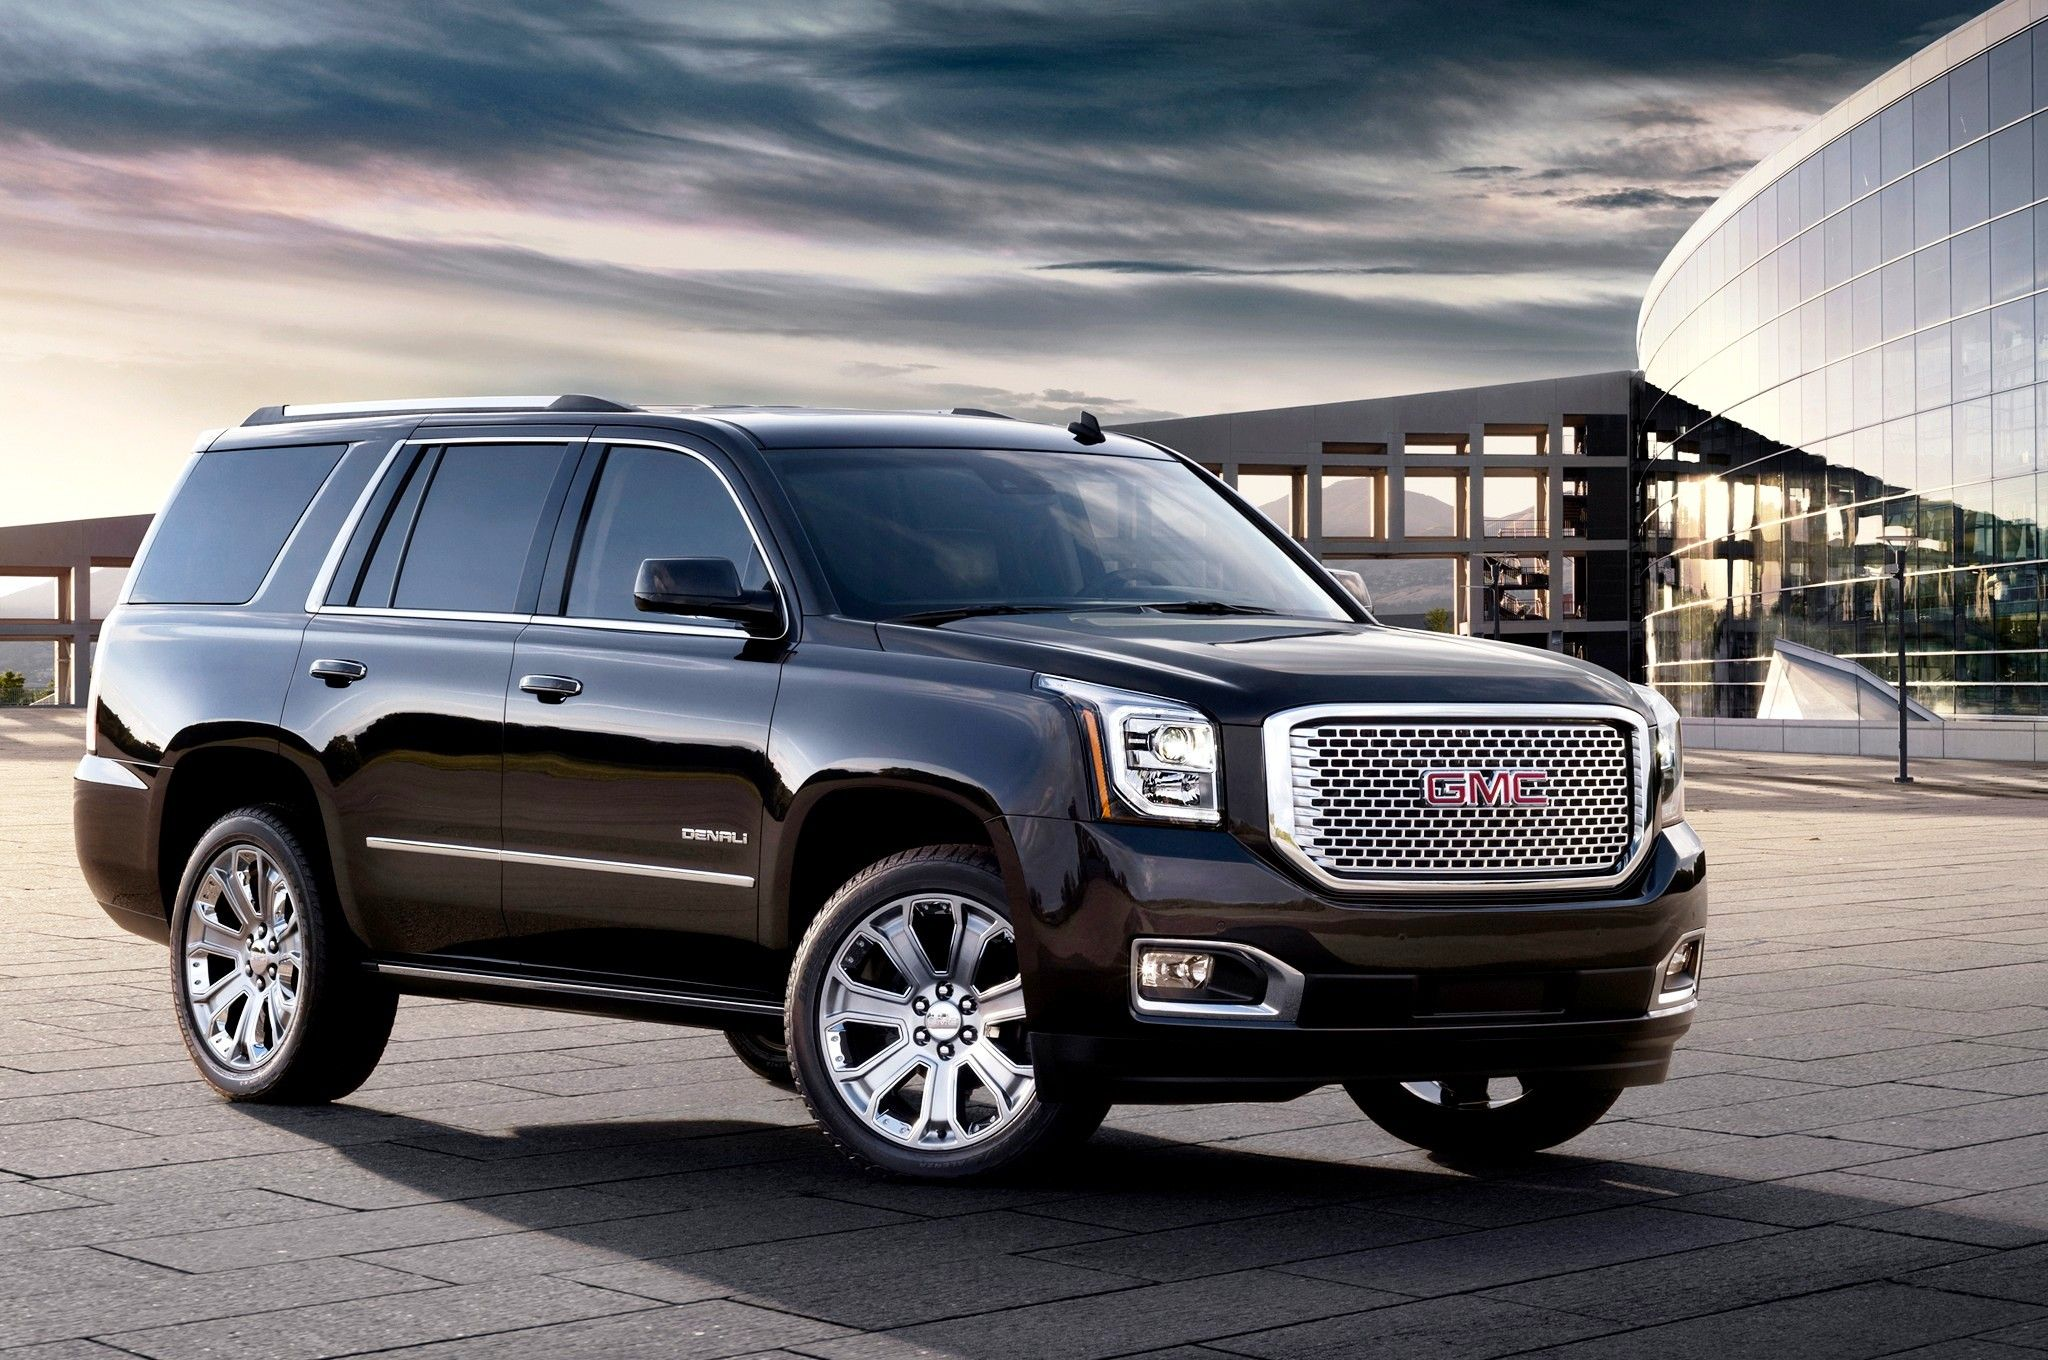 New 2016 Gmc Suv Prices Msrp Gmc Yukon Denali Gmc Suv Best